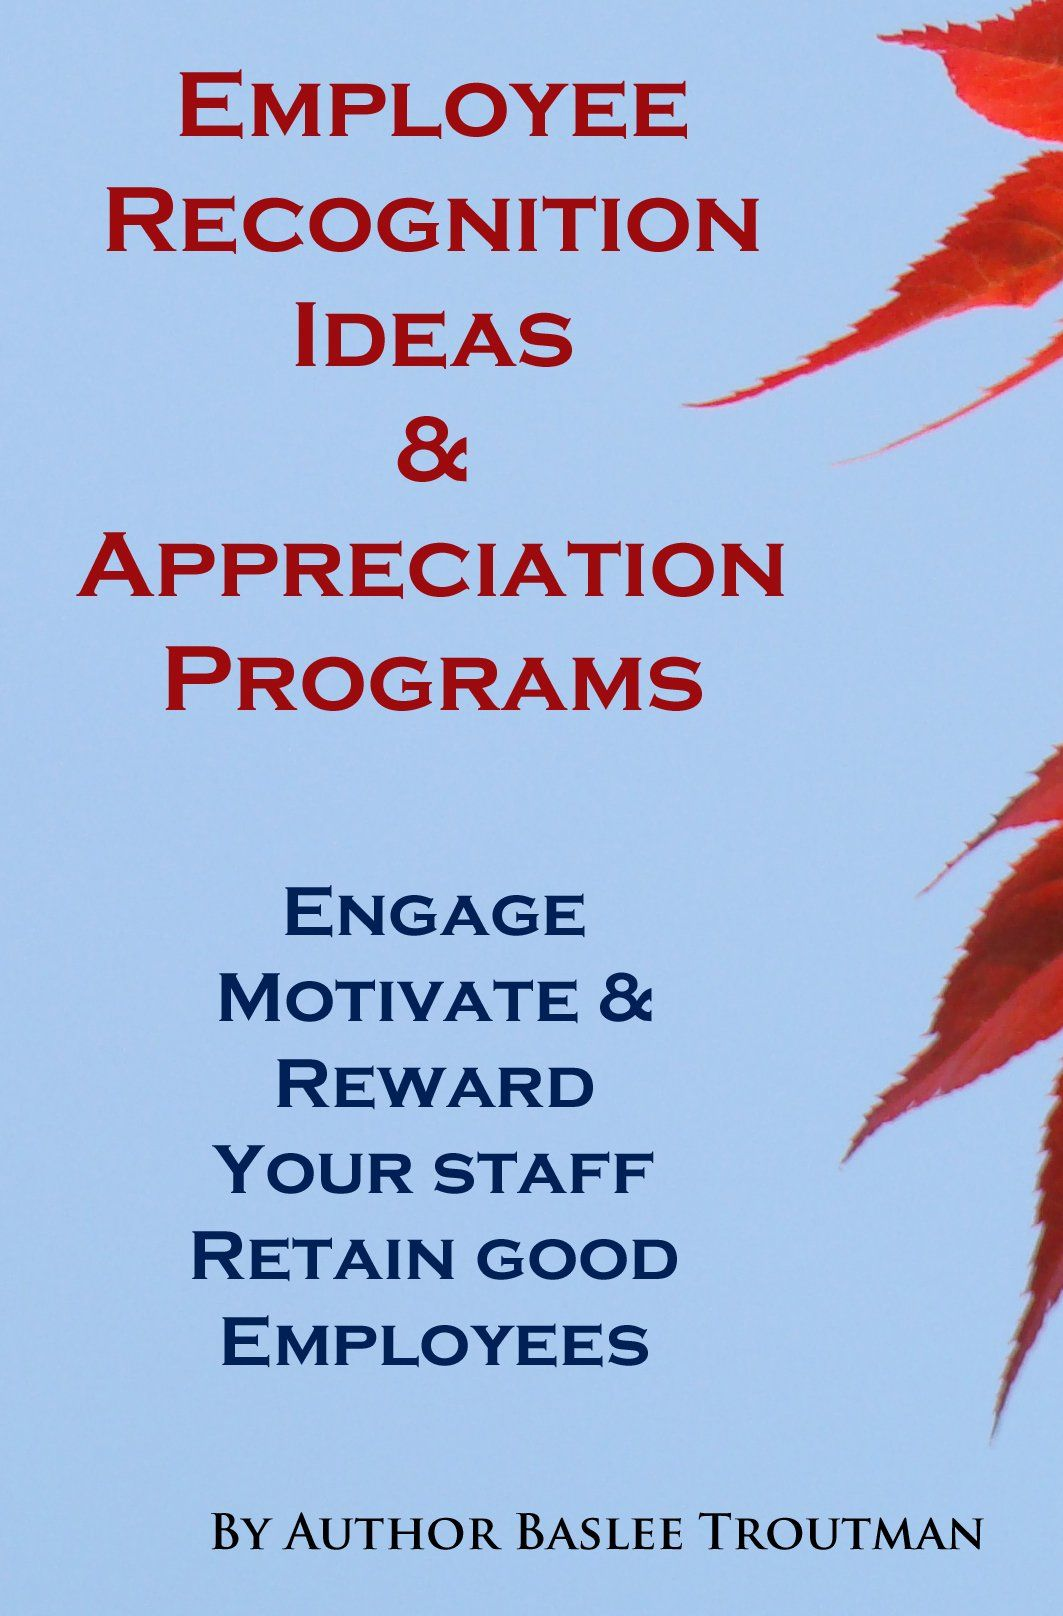 employee recognition ideas programs appreciate recognize your staff engage motivate reward management